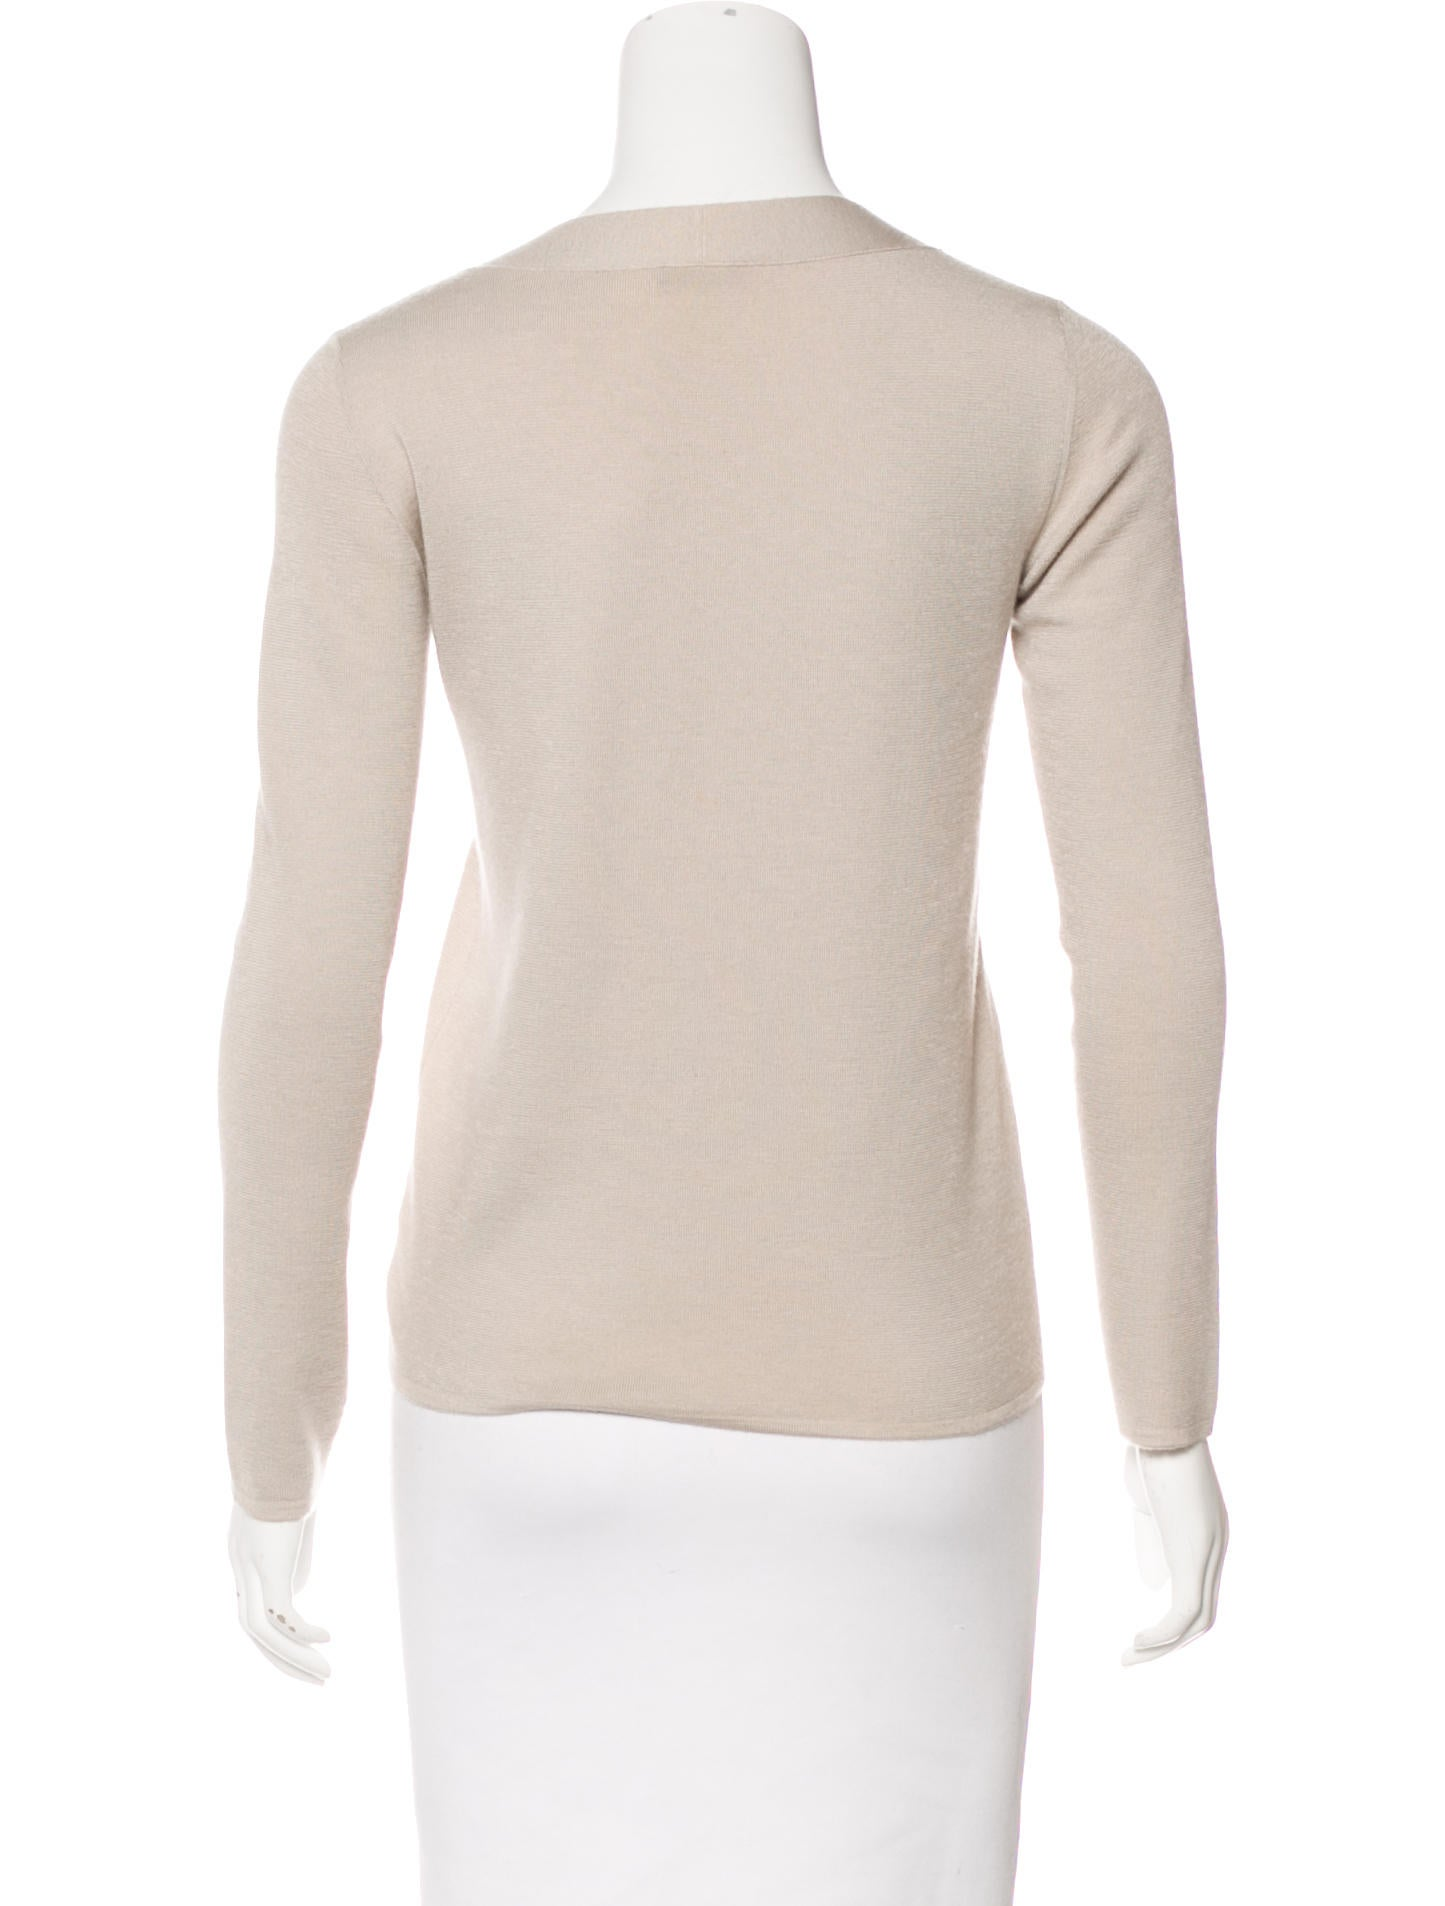 Akris Lightweight Cashmere Sweater - Clothing - AKR33872 | The ...